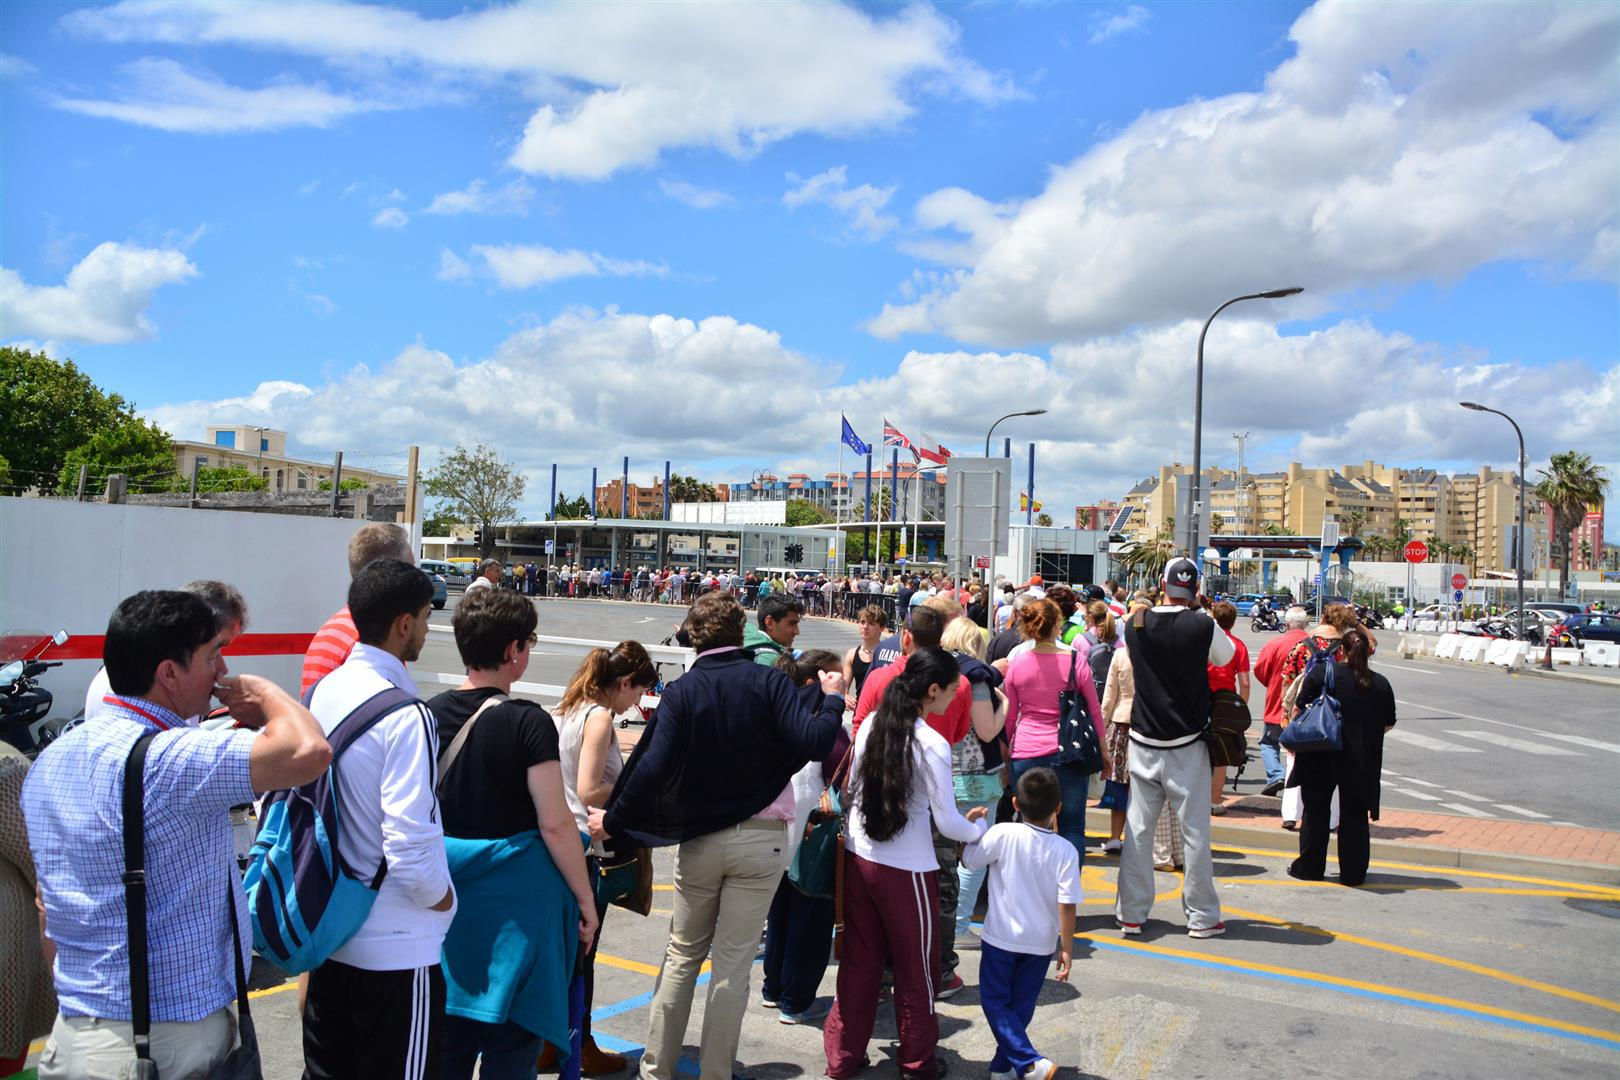 At 1500hrs on 28th May 2014 Spanish border controls at the Gibraltar-Spain frontier saw the queues extend all the way to the airport forecourt. At the same time vehicular passage saw only a 30 minute delay at the most. Children were caught up in the delays.